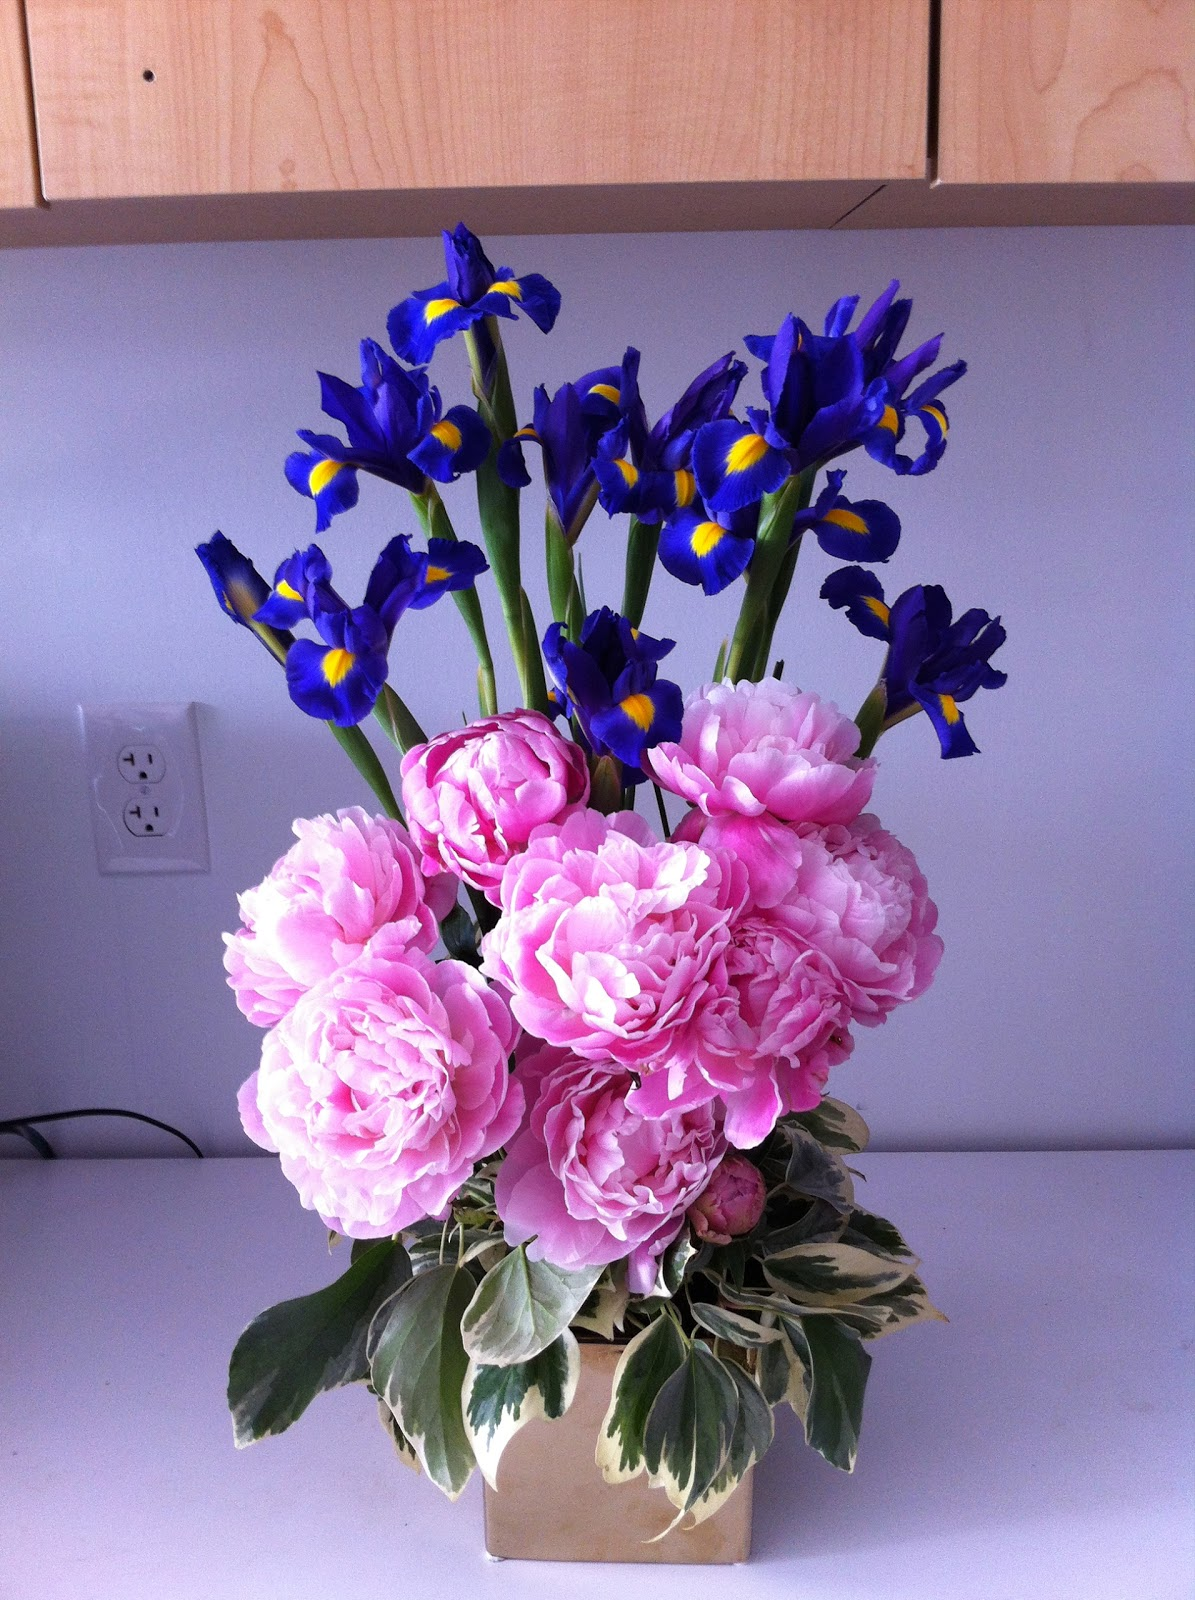 Chic Floral Designs Iris Peony Arrangement